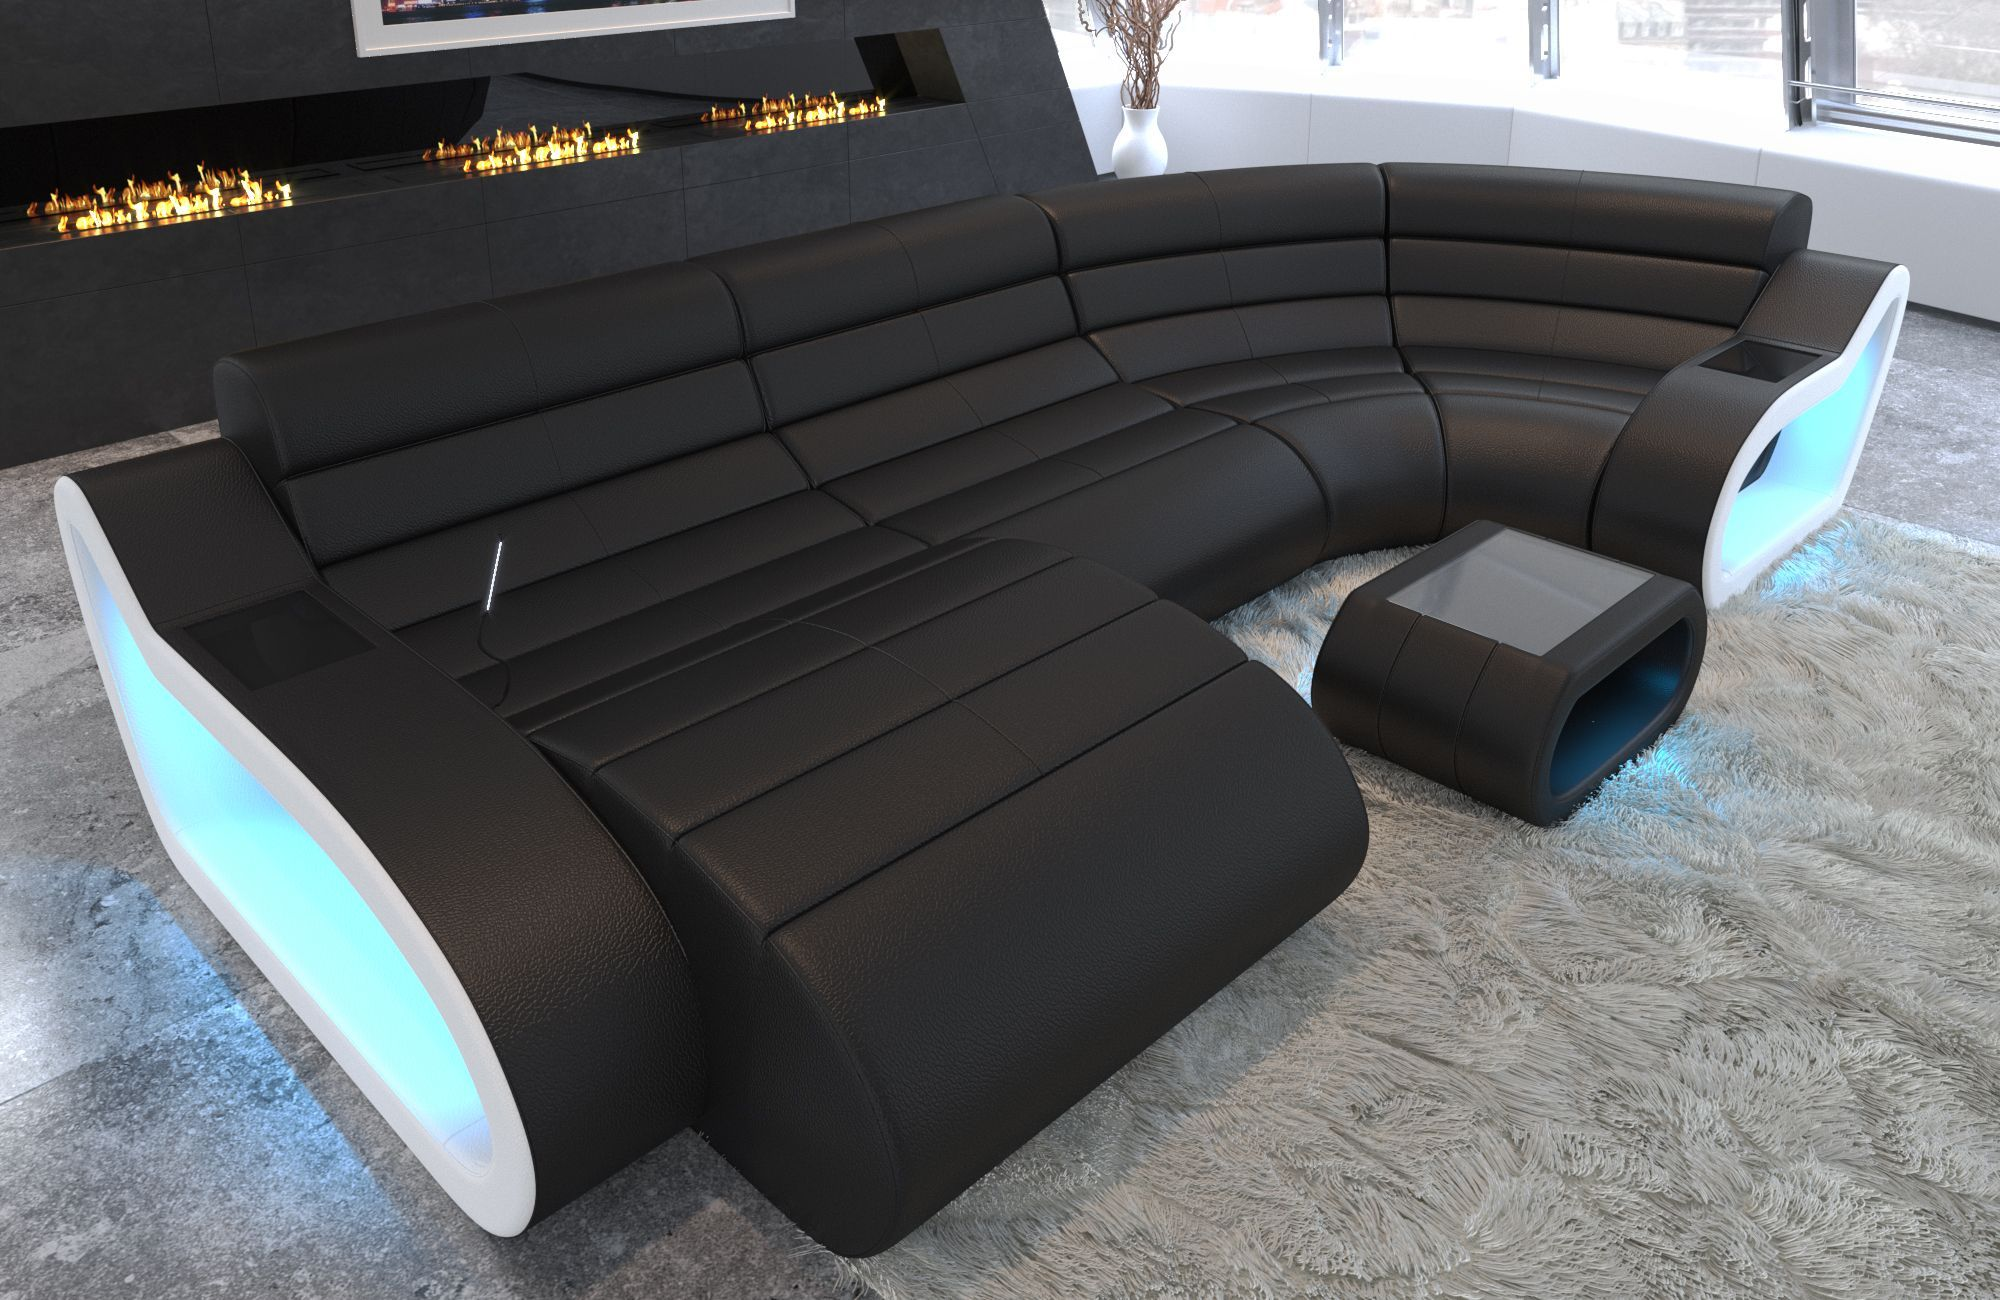 Led Beleuchtung Inspire Your Home Is Very Interesting Living Room Sofa Design Luxury Couch Living Room Sofa Set